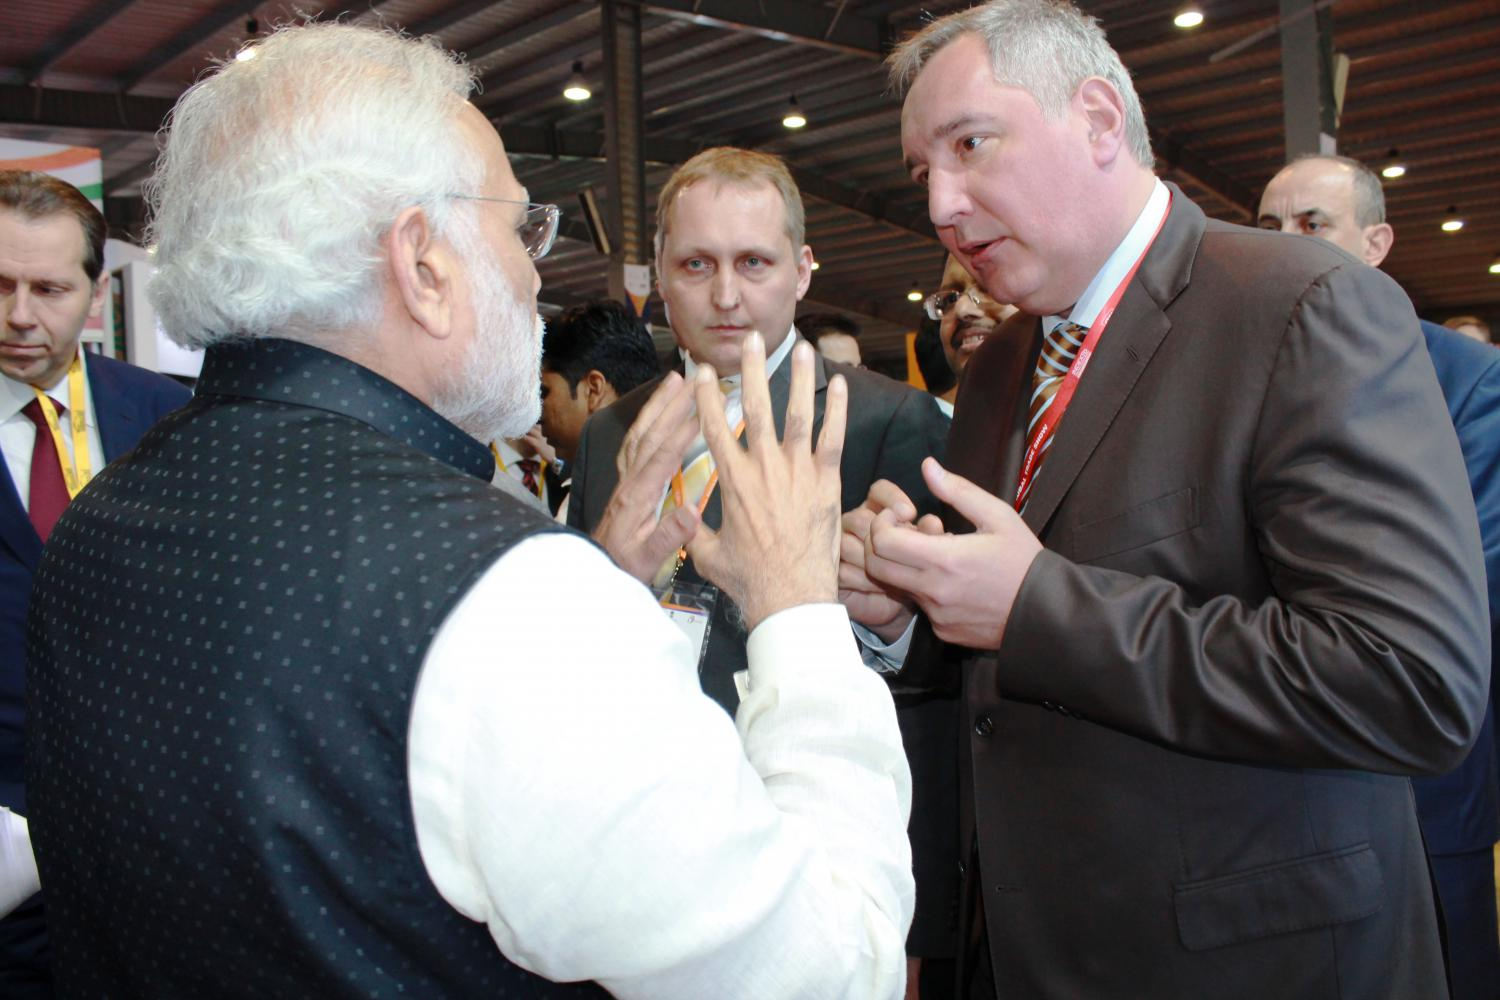 Narendra Modi and Dmitry Rogozin at the Vibrant Gujarat Summit.